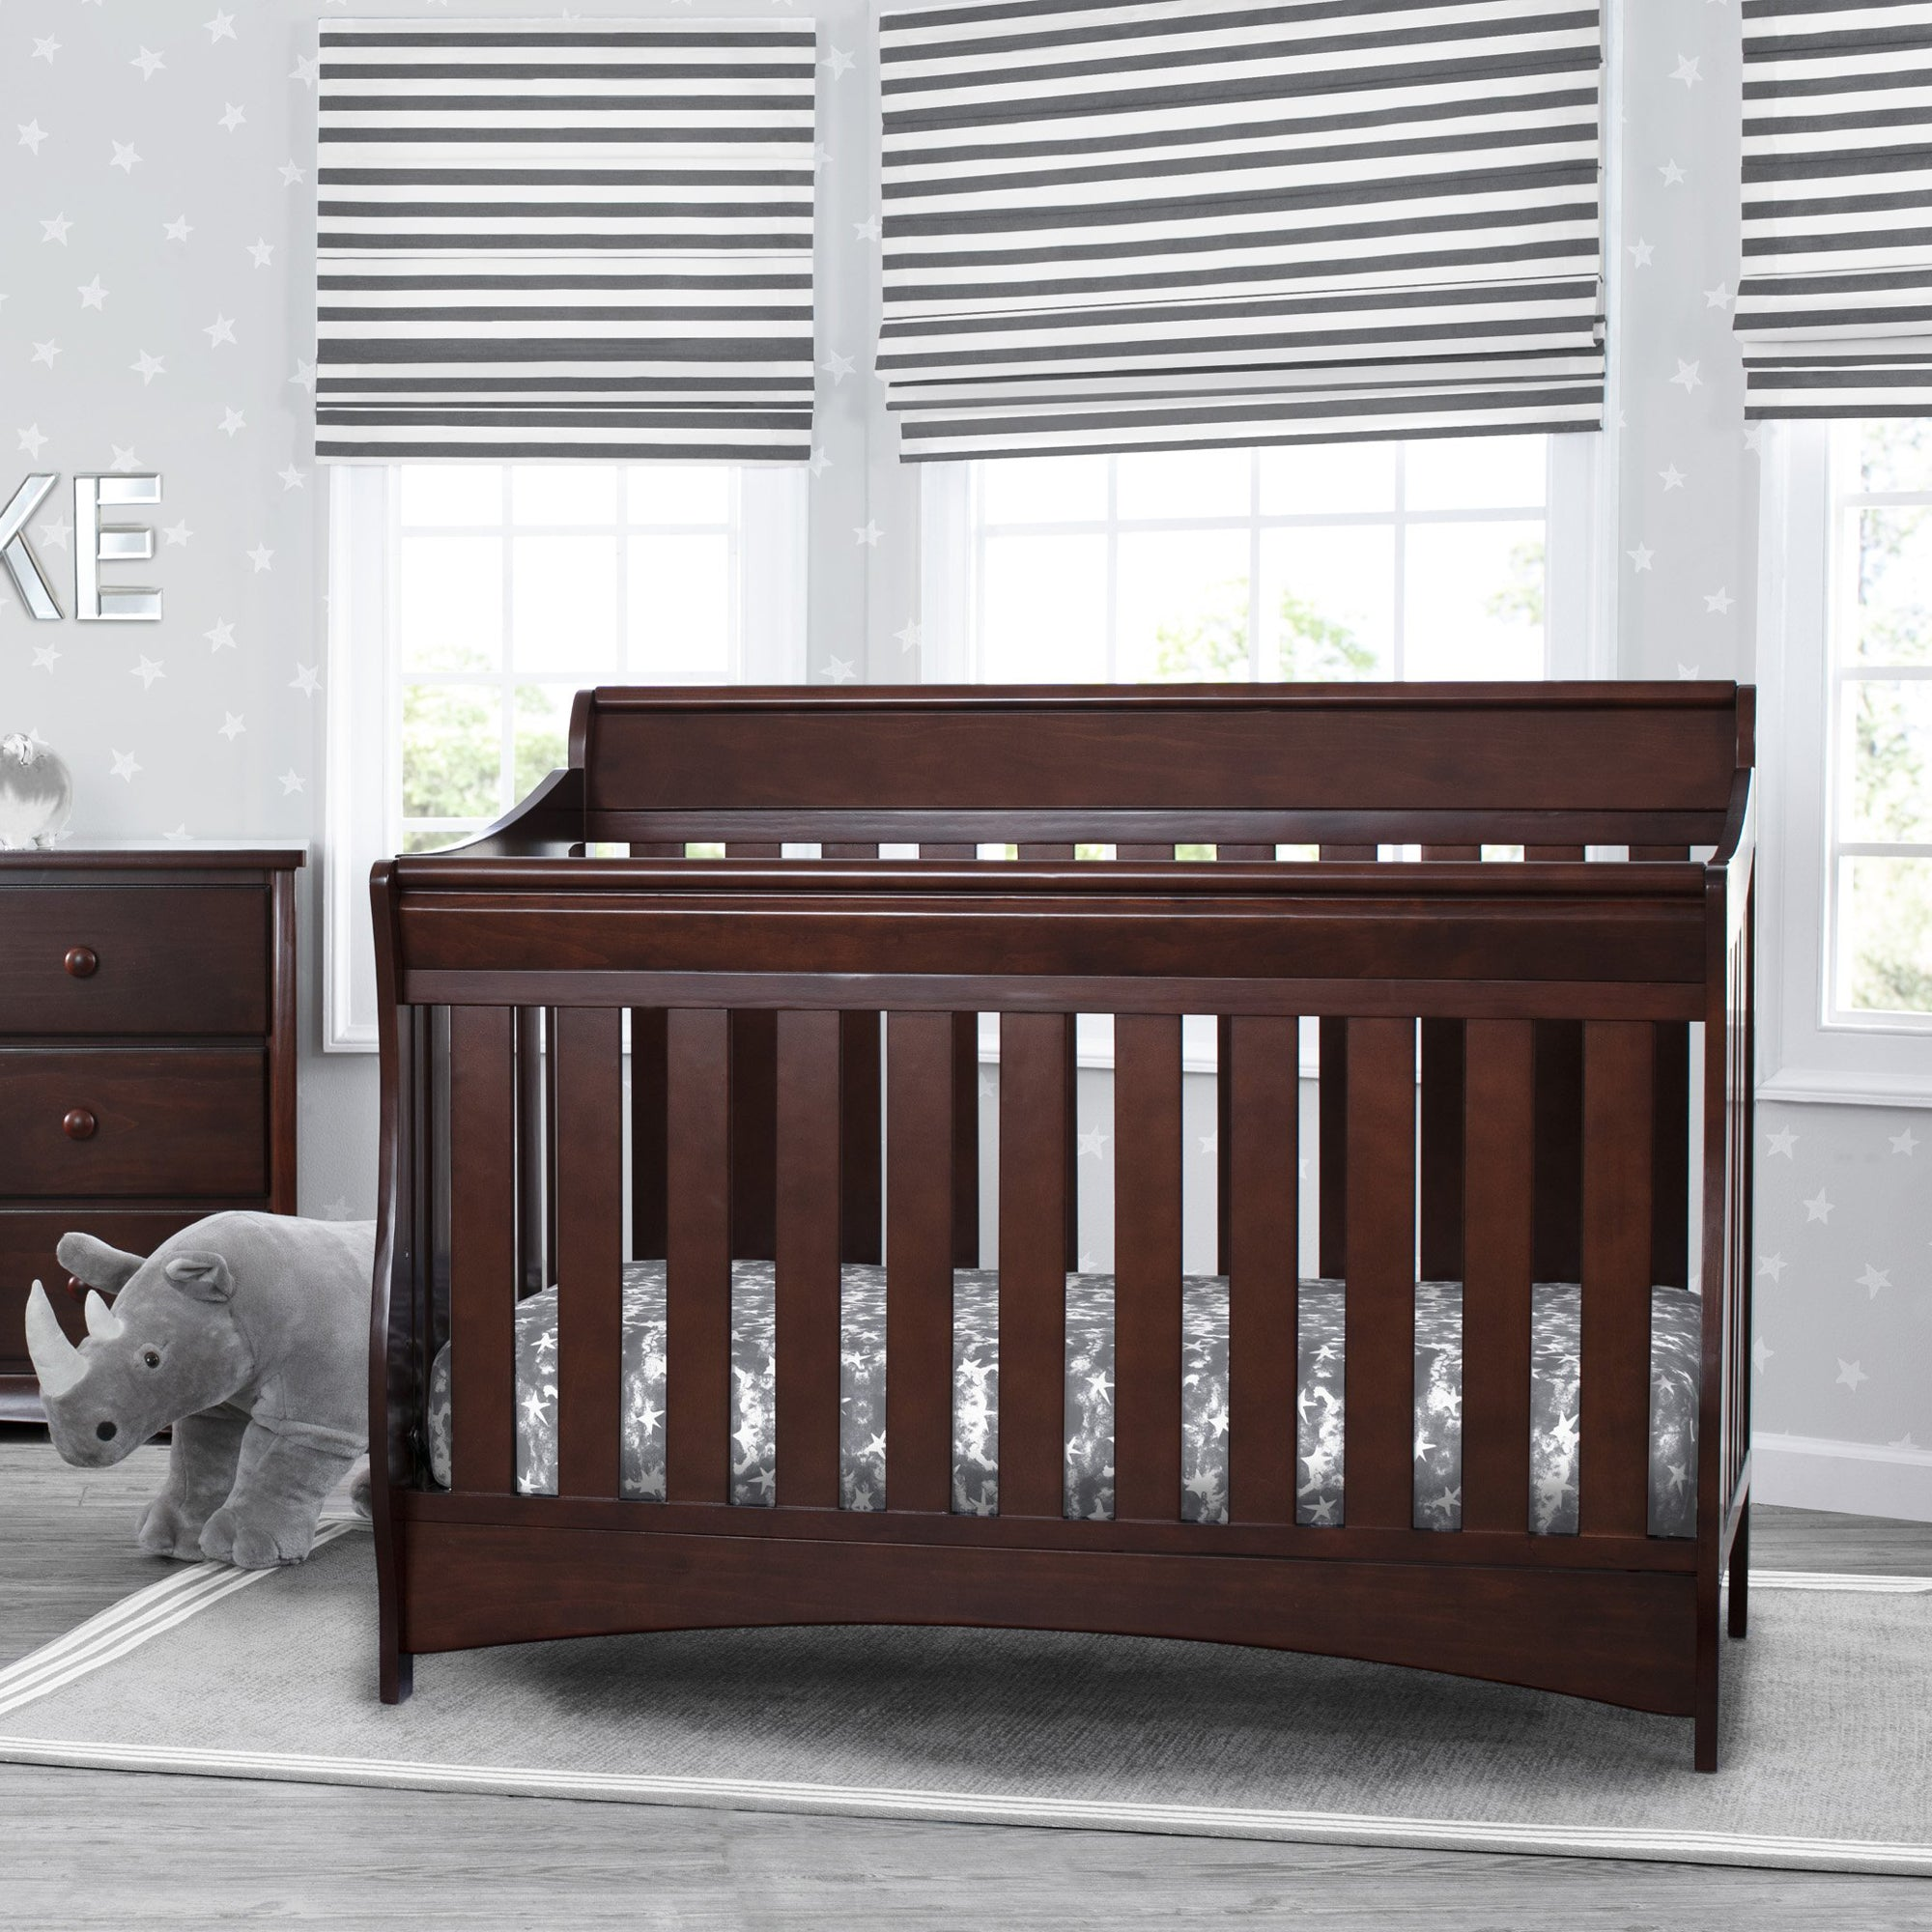 Bentley S Series Deluxe 6-in-1 Convertible Crib